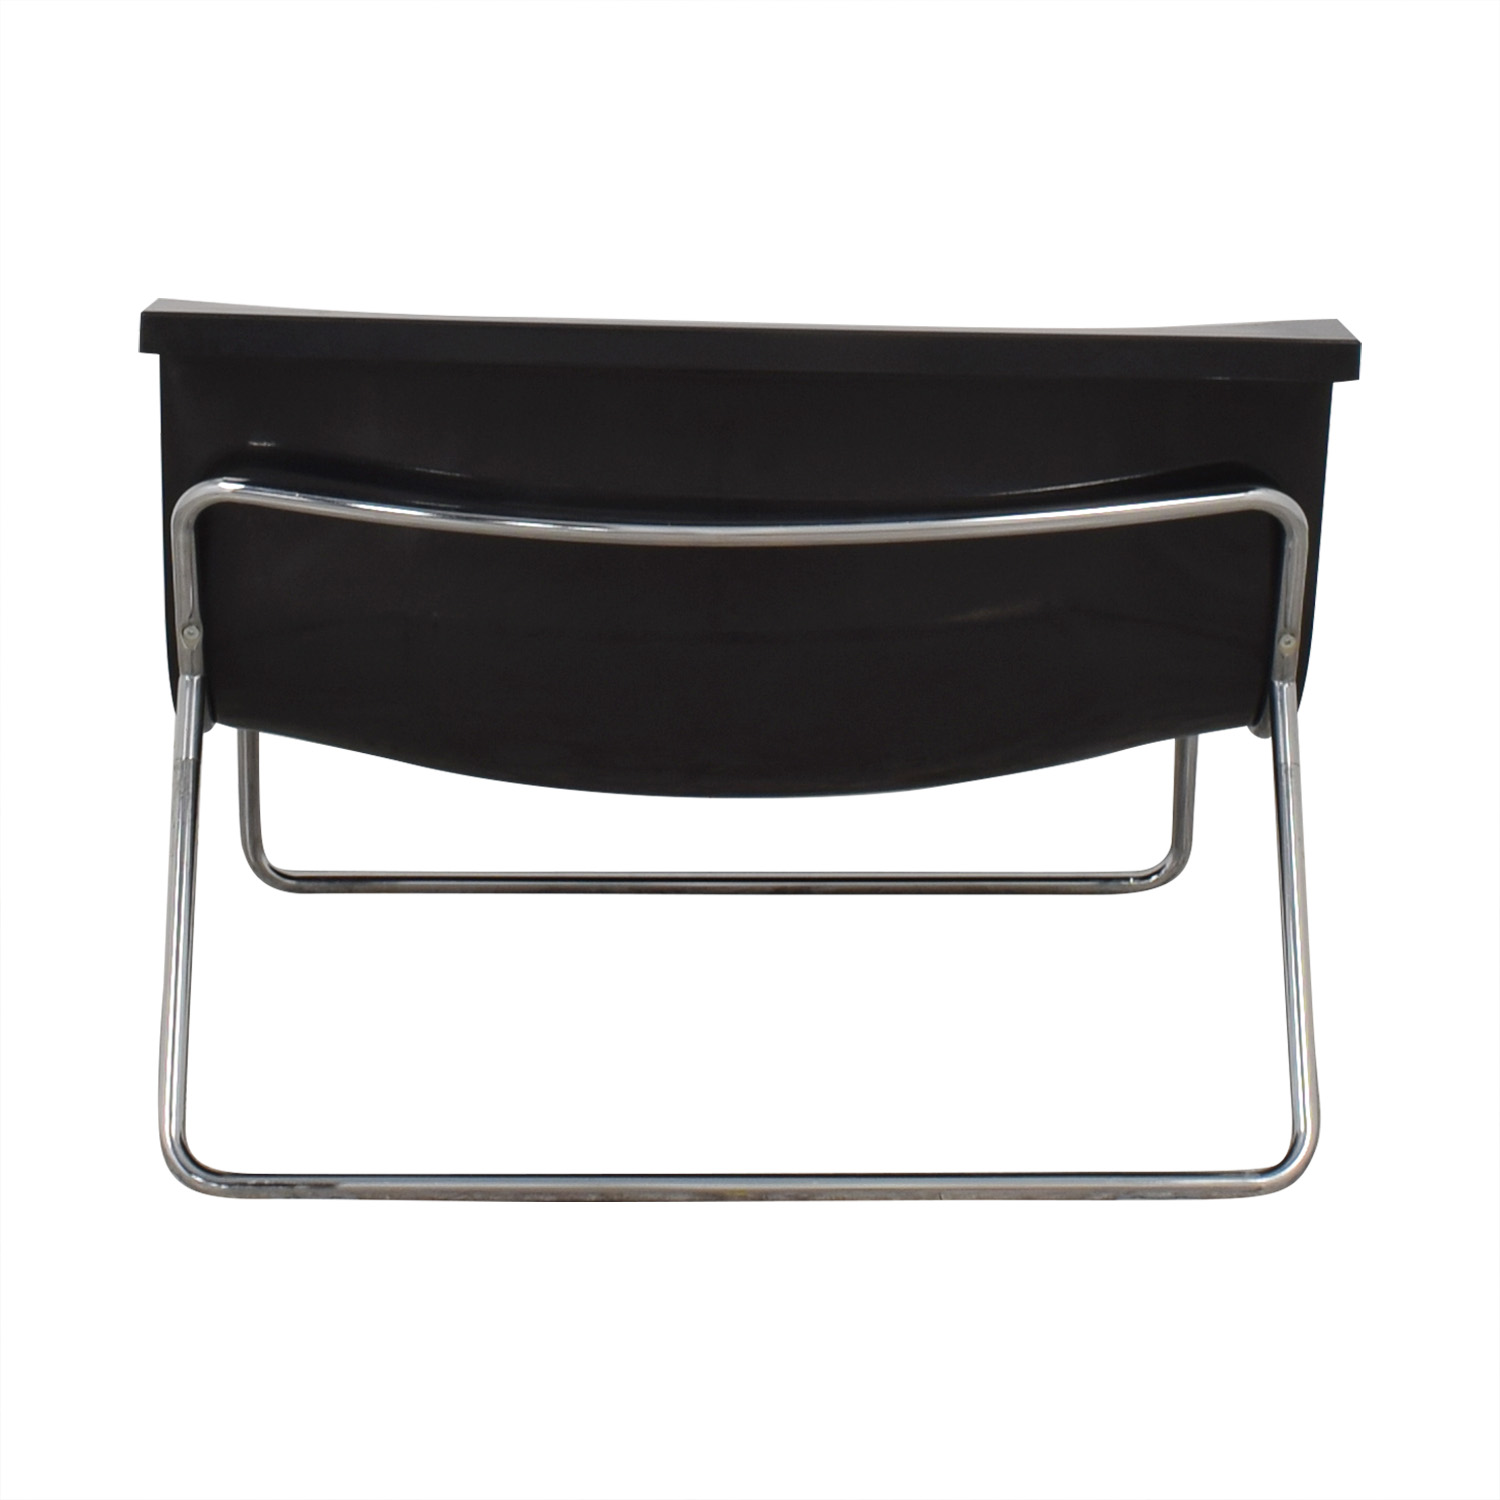 Kartell Kartell Form Lounge Chair by Piero Lissoni on sale